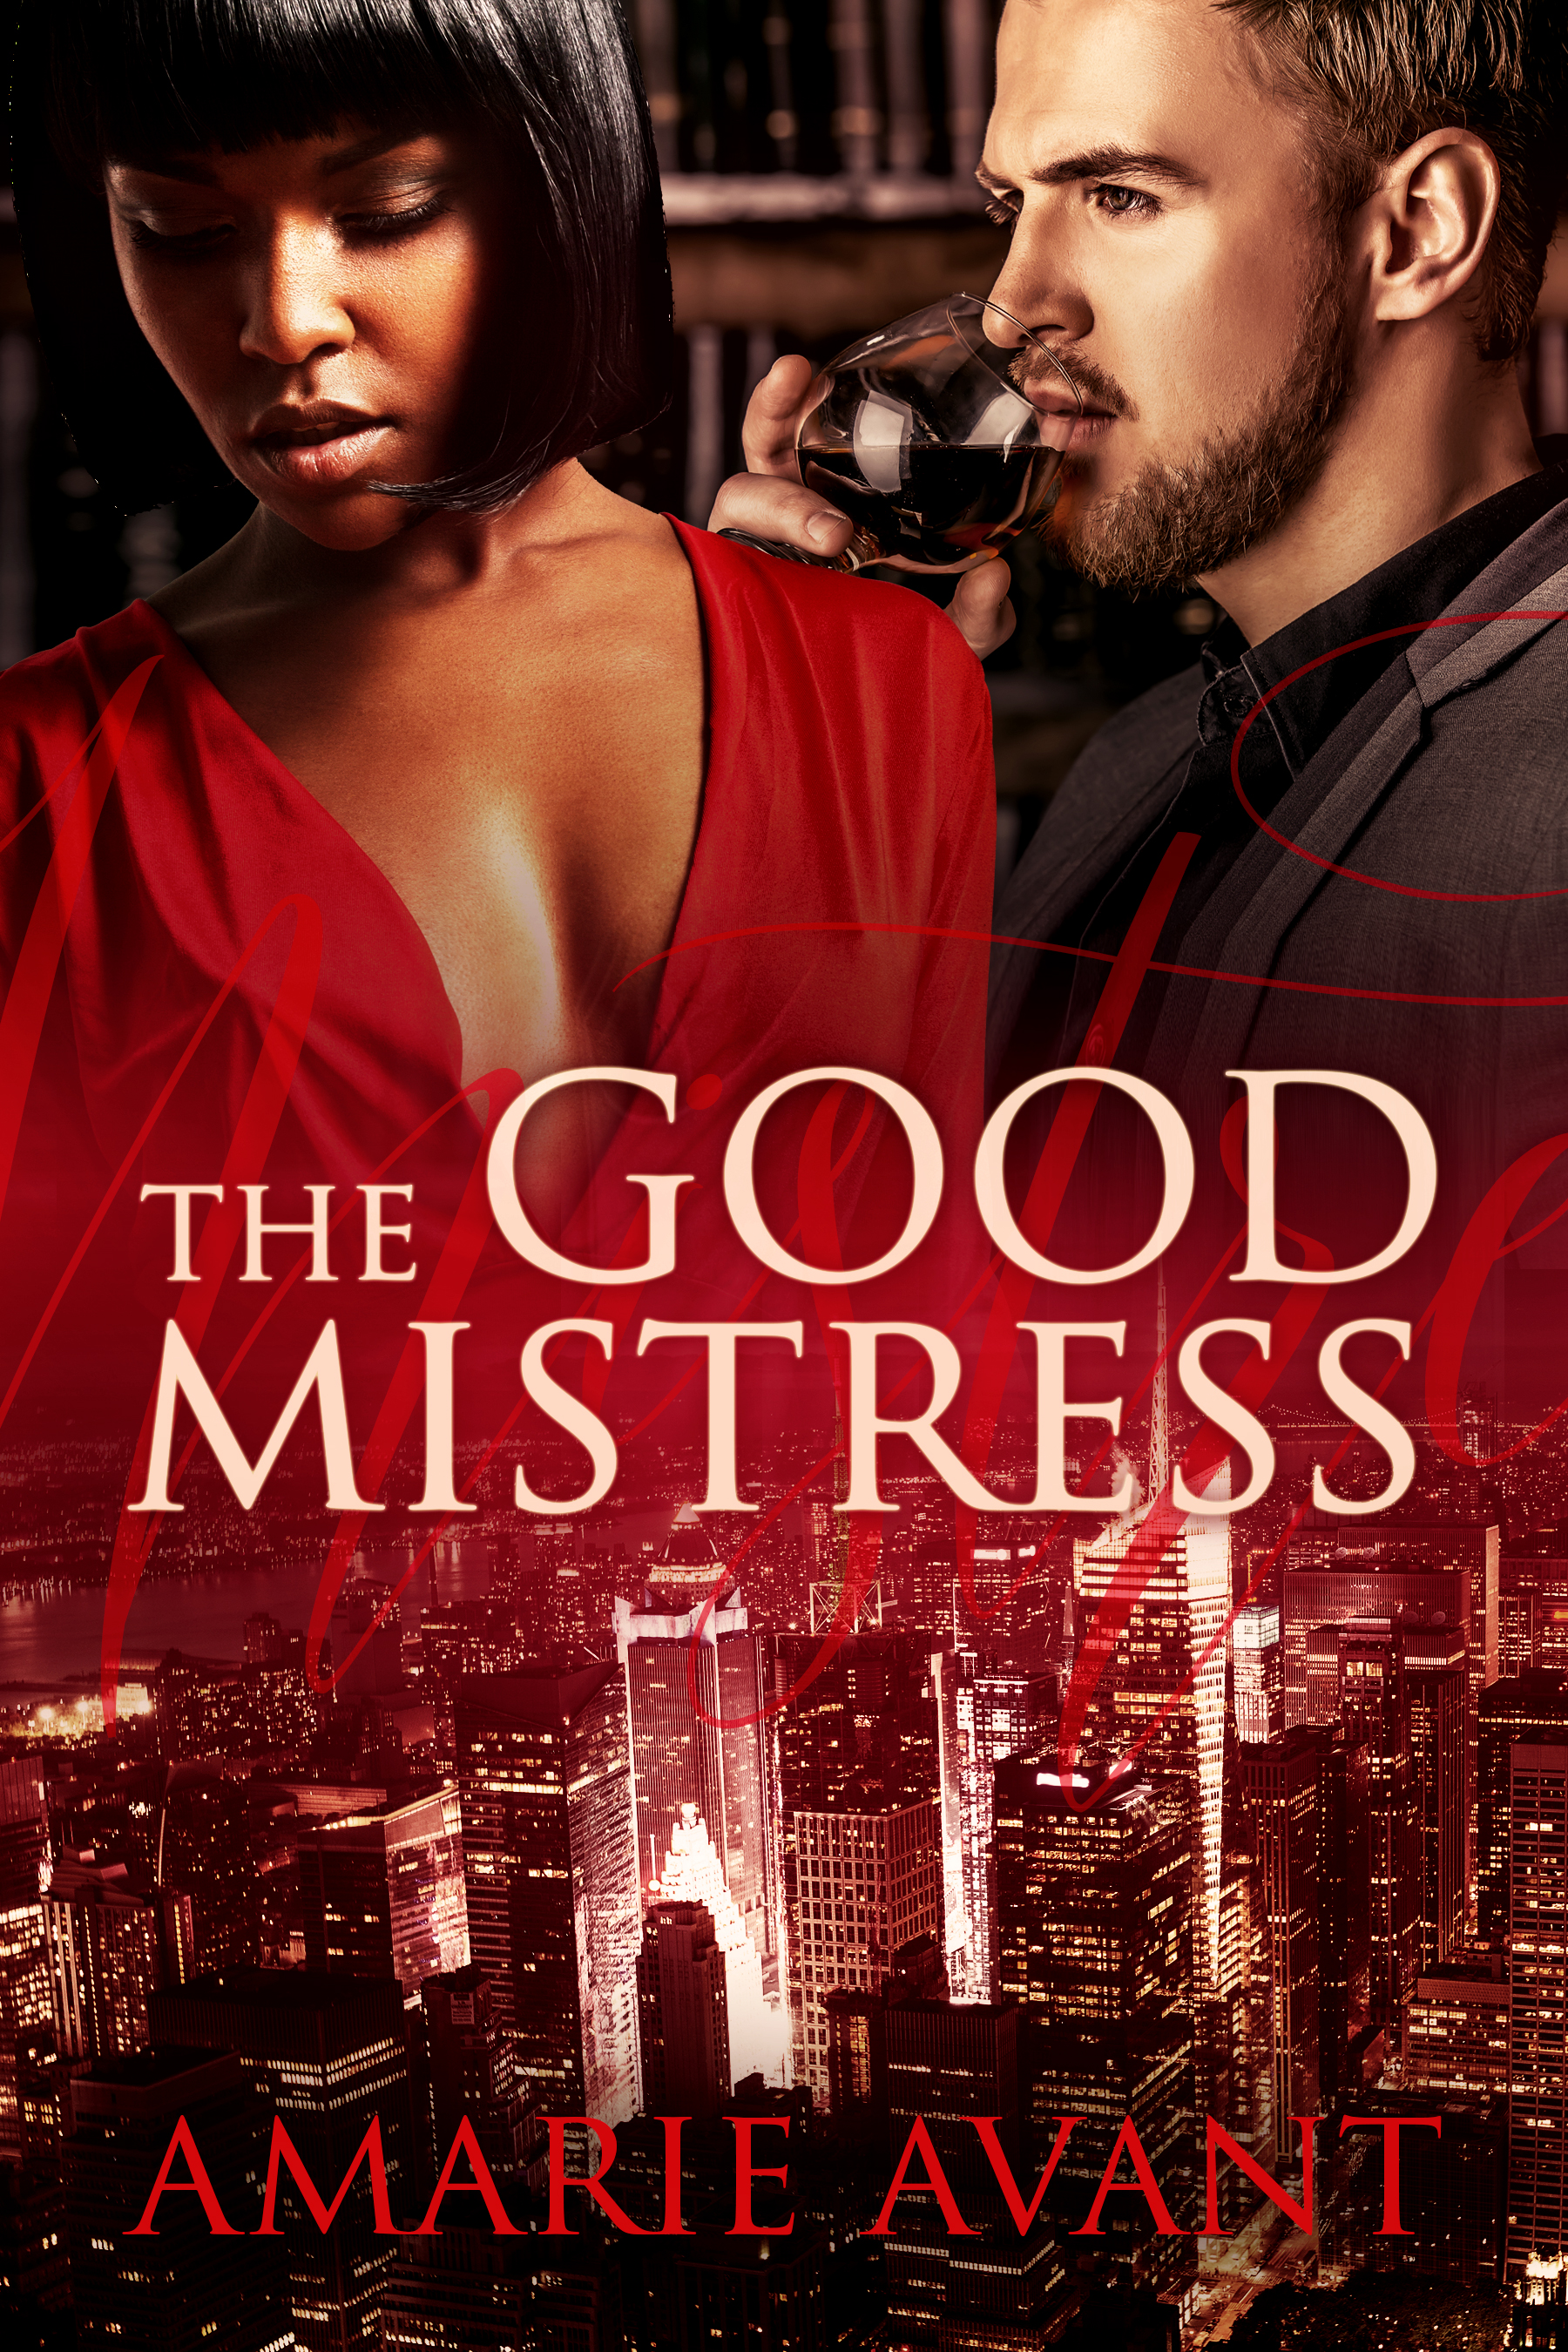 The Good Mistress by Amarie Avant